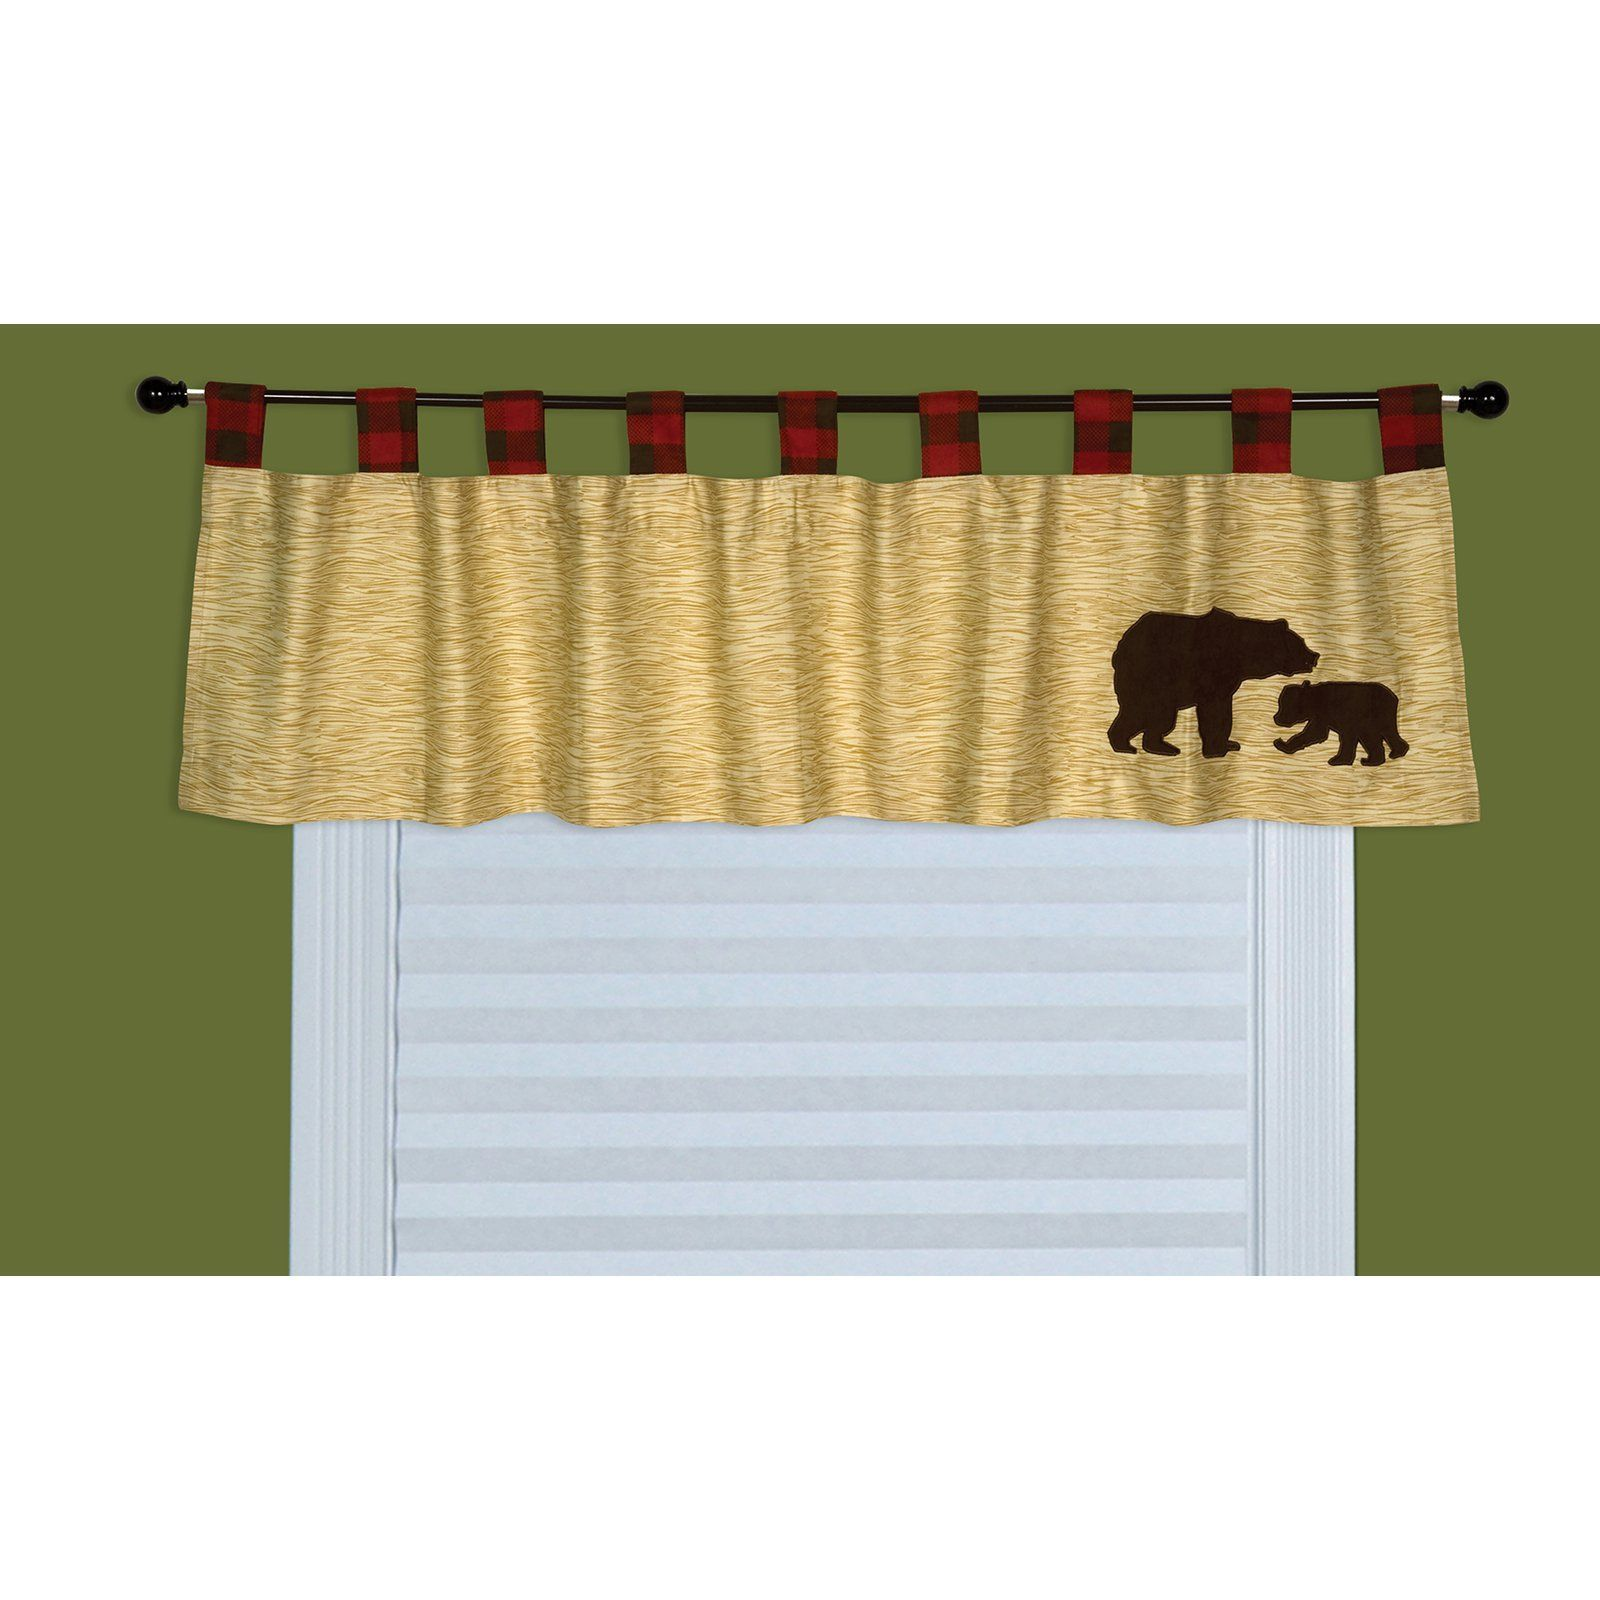 Trend Lab Northwoods Window Valance 110242 Nursery